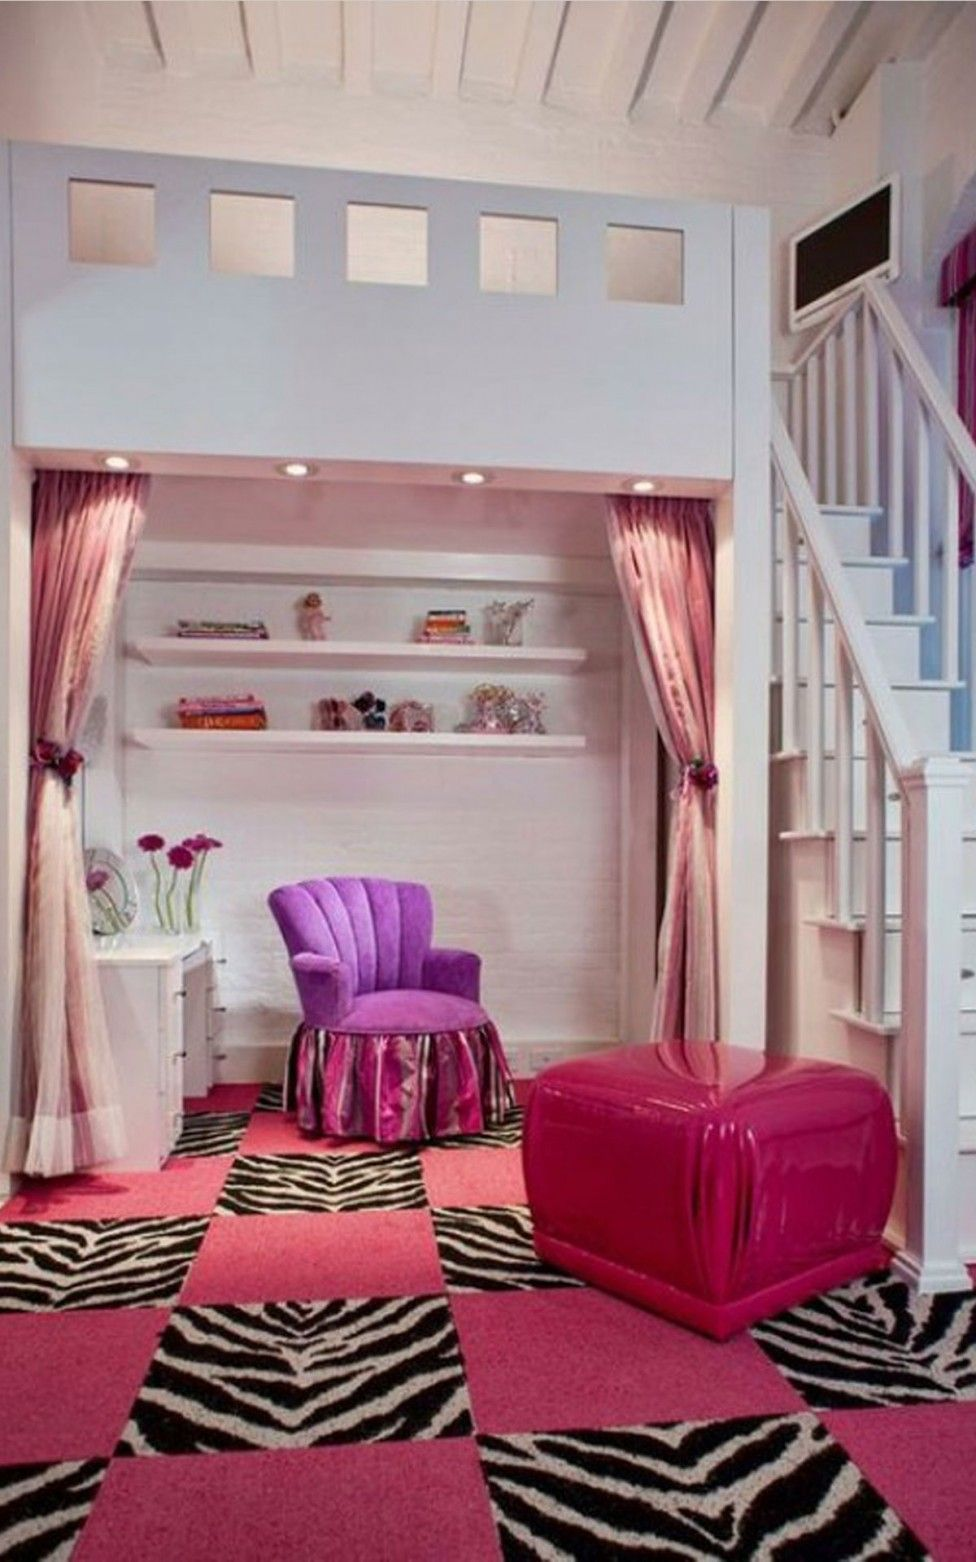 Small room ideas for girls with cute color bedroom 22 pretty girls room design room layouts for - Small girls bedroom decor ...